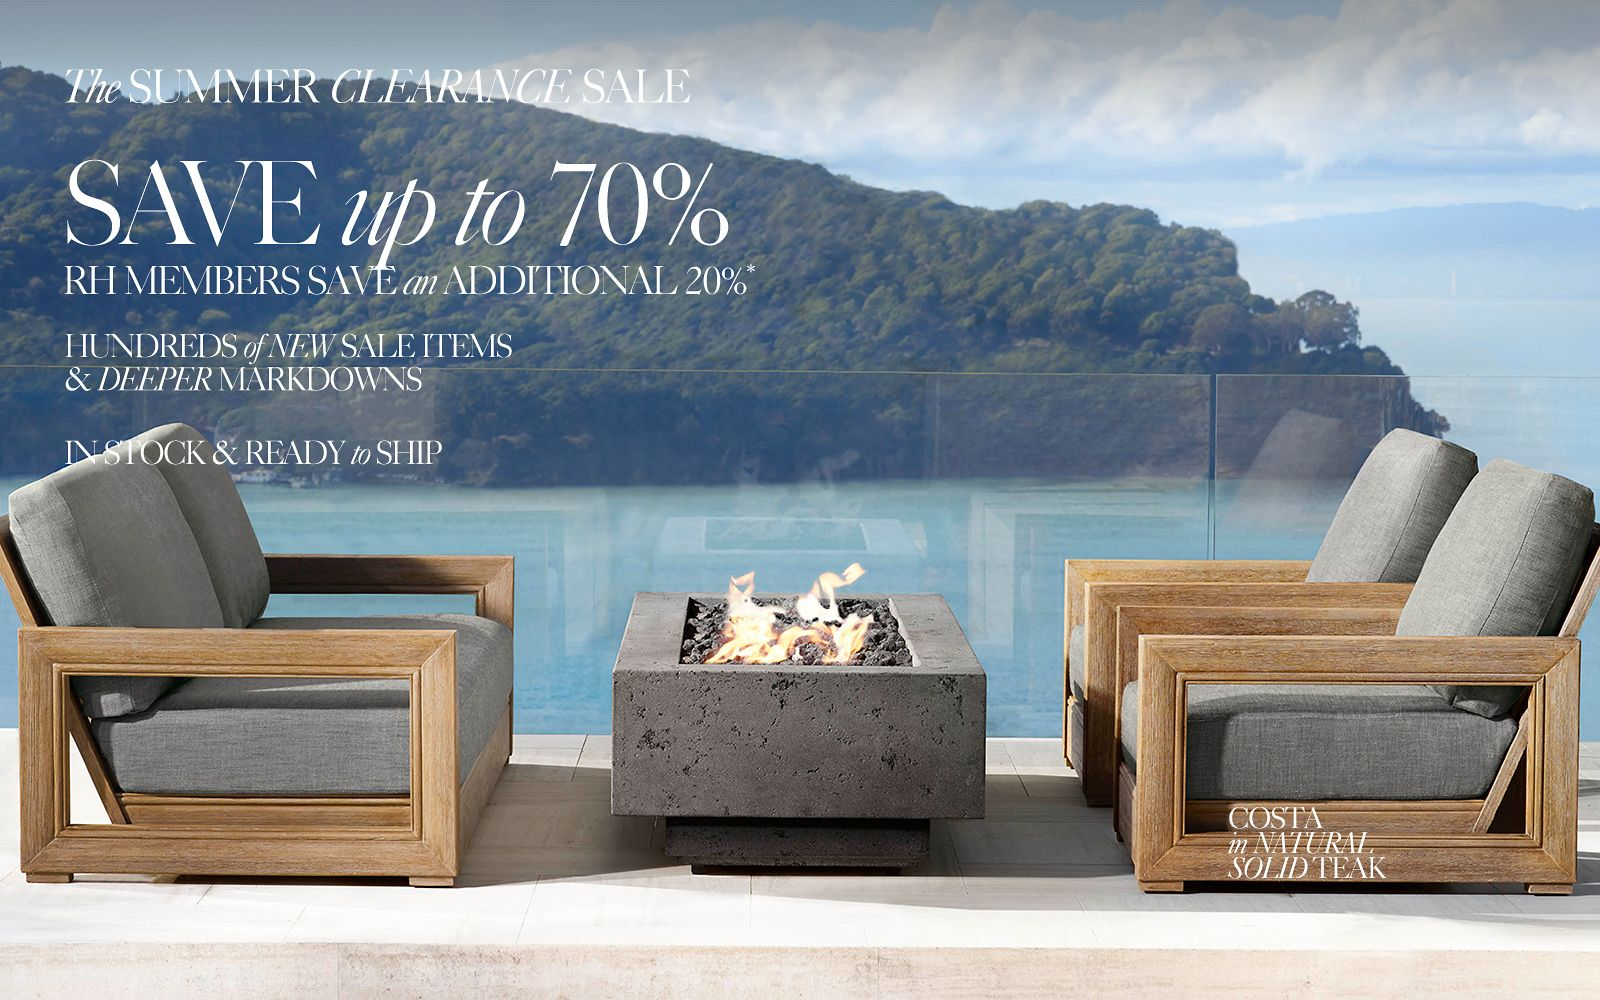 Summer Savings. Save up to 60% on hundreds of items. Shop the Costa Outdoor Collection.